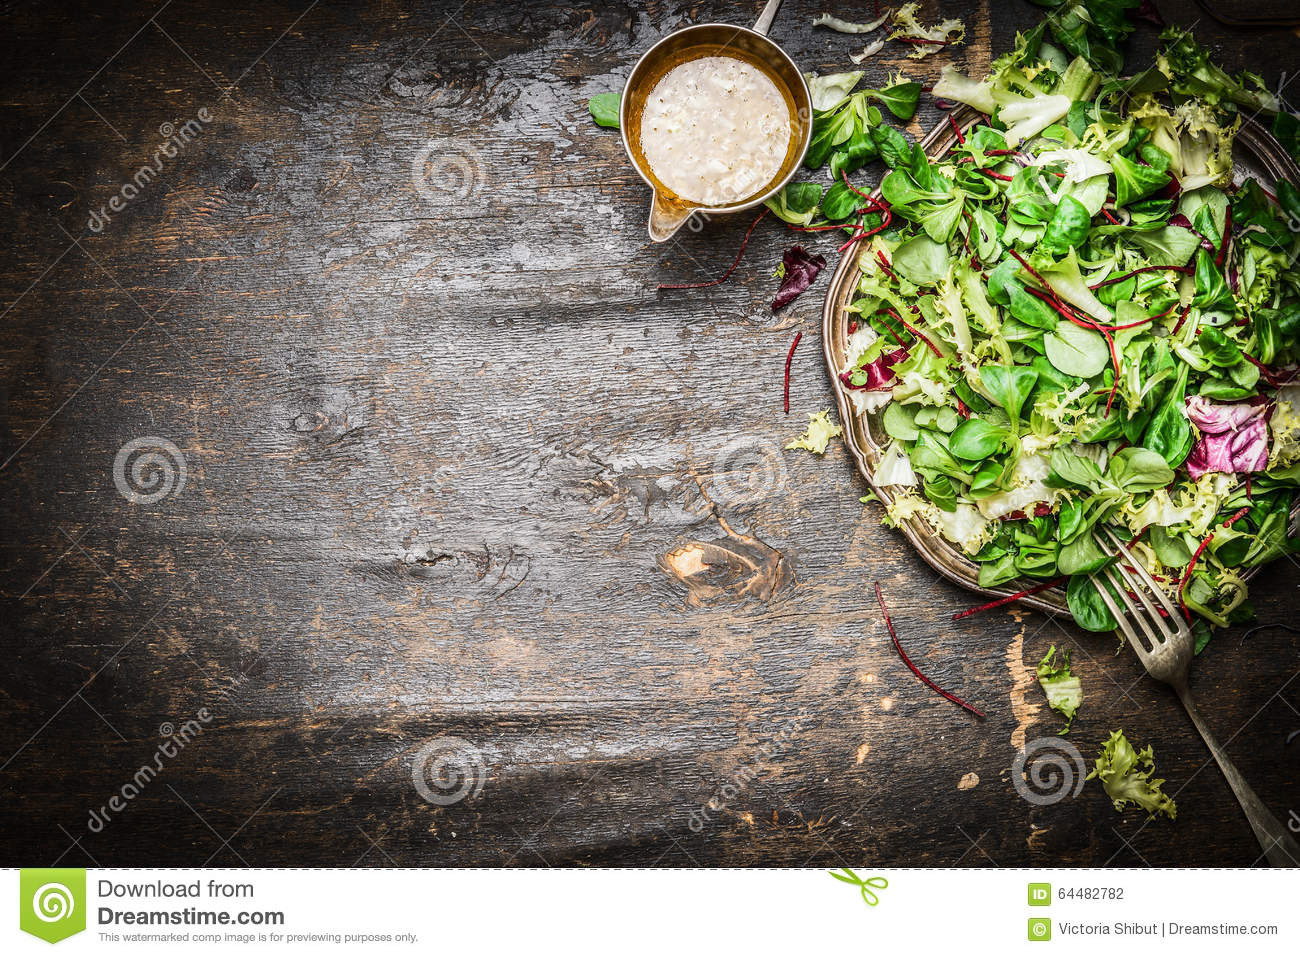 Fresh mixed green salad with oil dressing rustic wooden background, top view. Healthy food